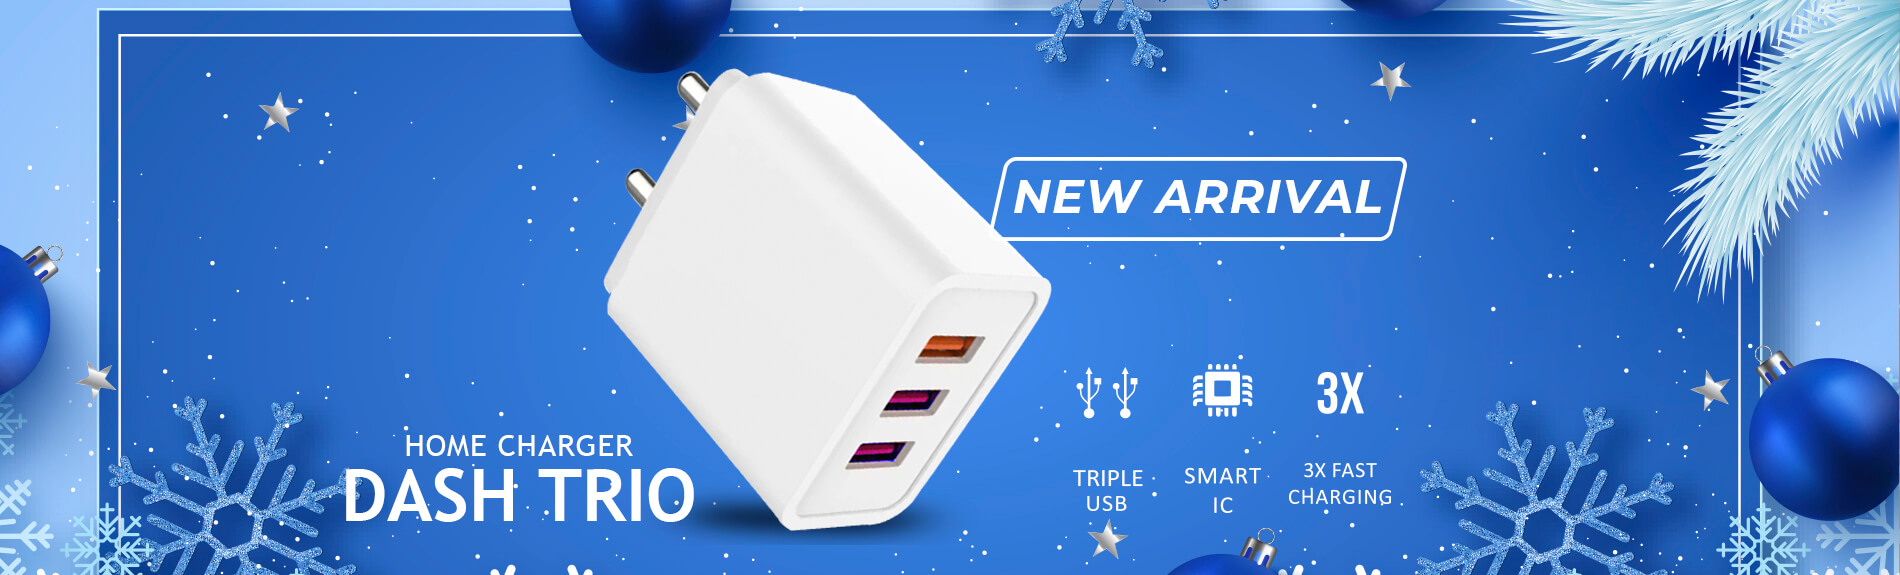 Trio Charger 3 port usb Fast charging